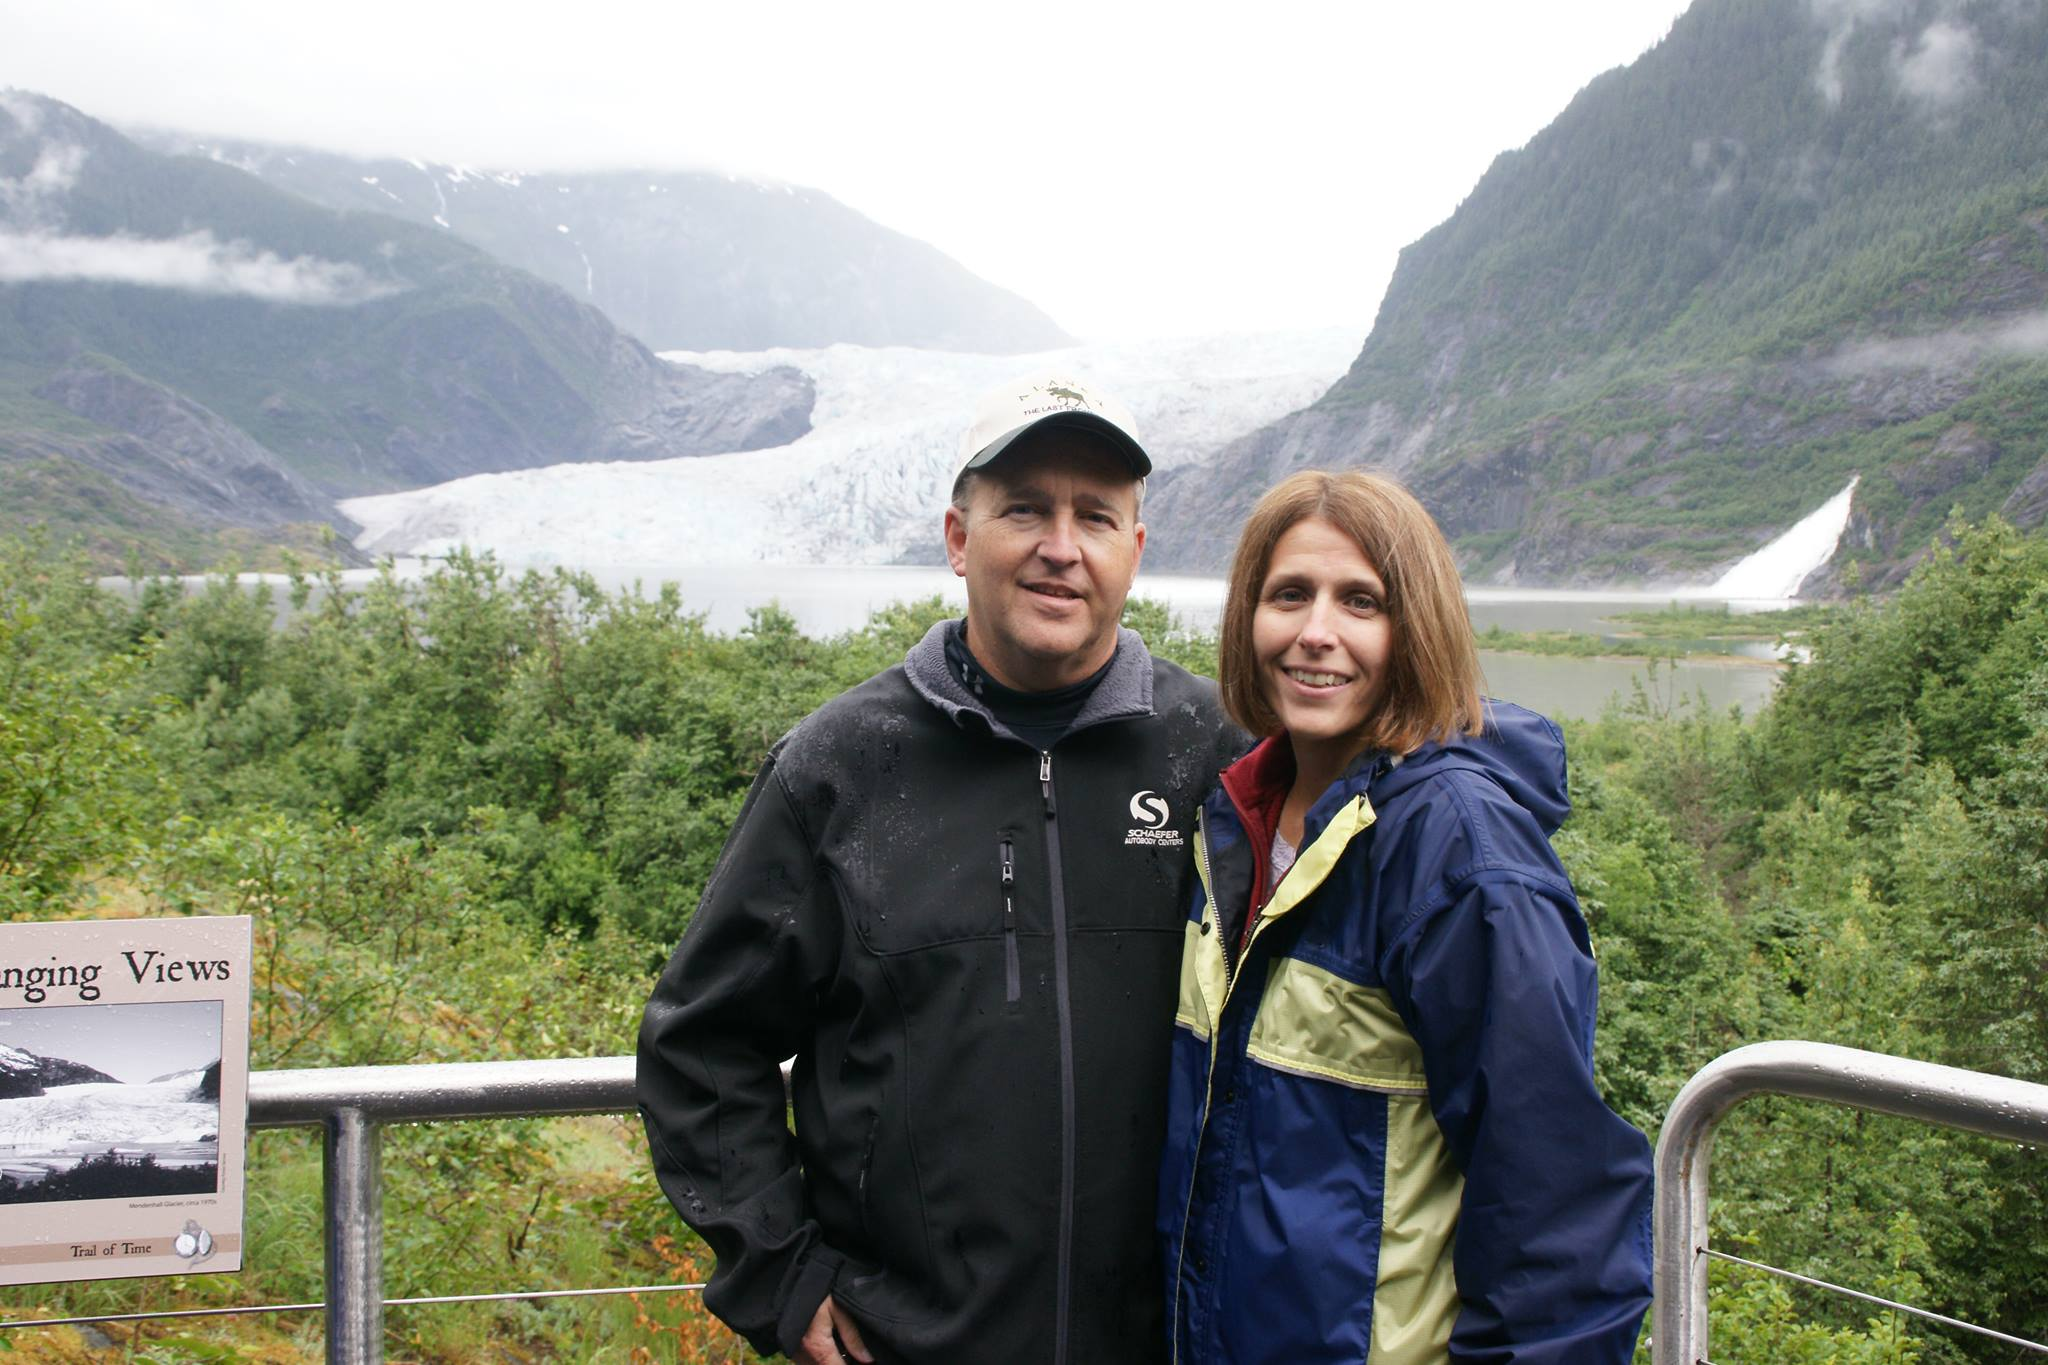 kevin and wife in front of scenic view smiling